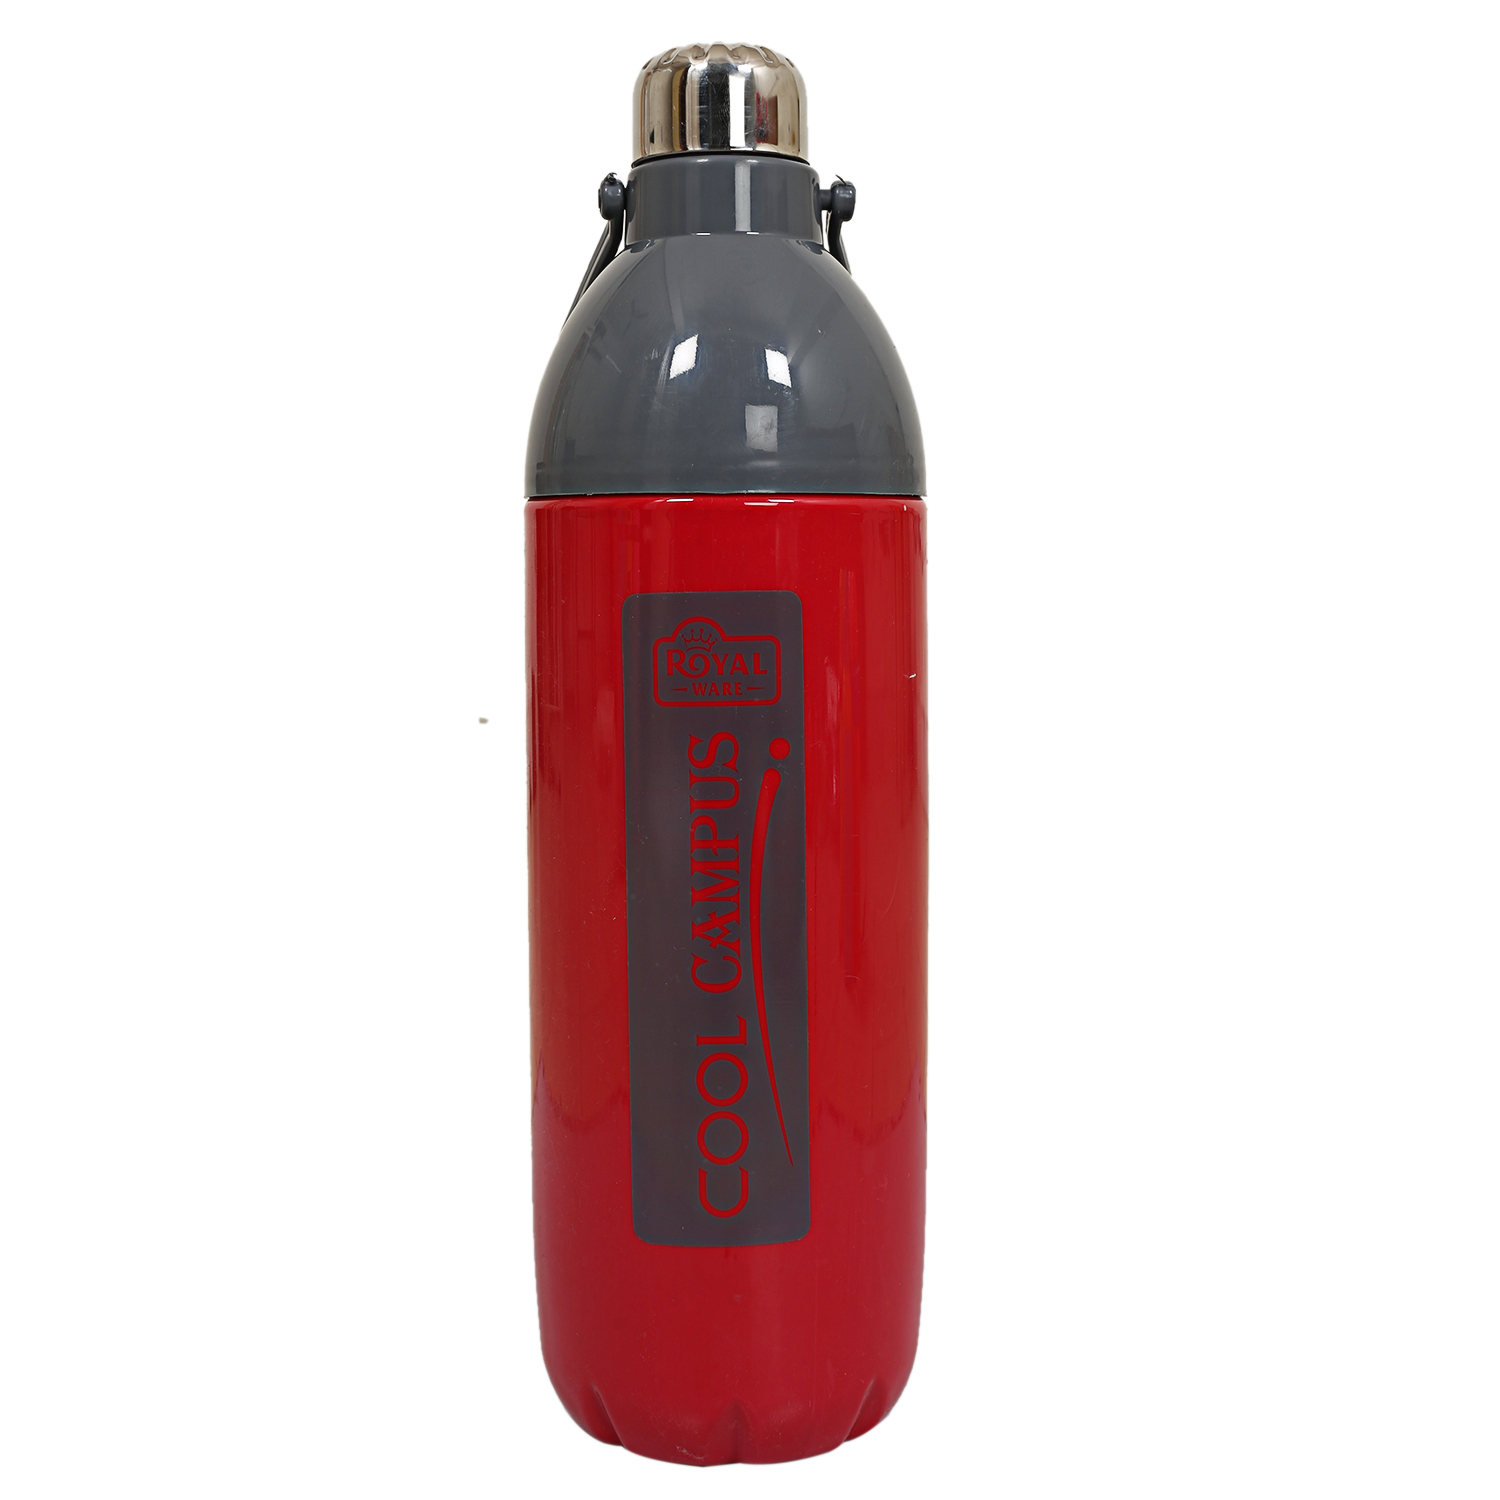 Kuber Industries Plastic Insulated Water Bottle with Handle 2200 ML (Maroon) -CTLTC11108